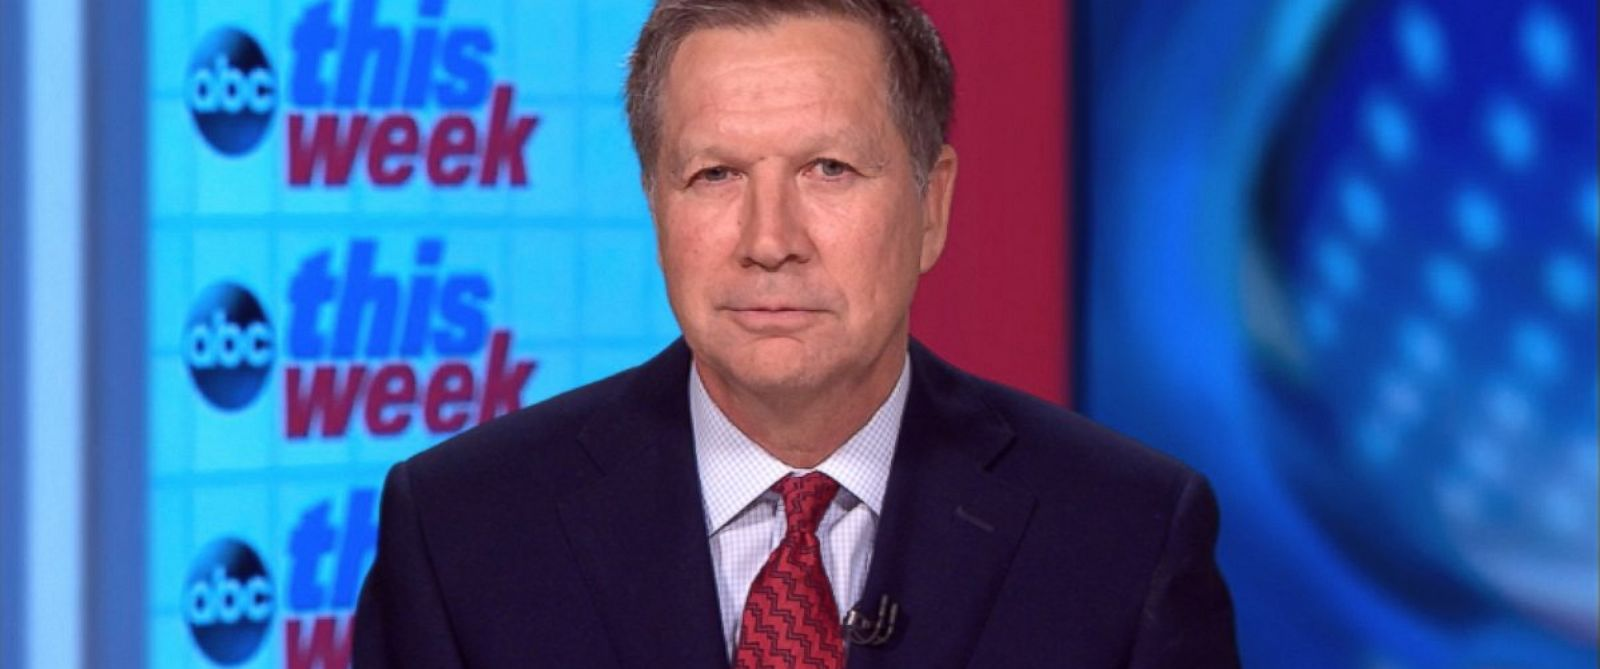 PHOTO: Ohio Governor John Kasich on This Week